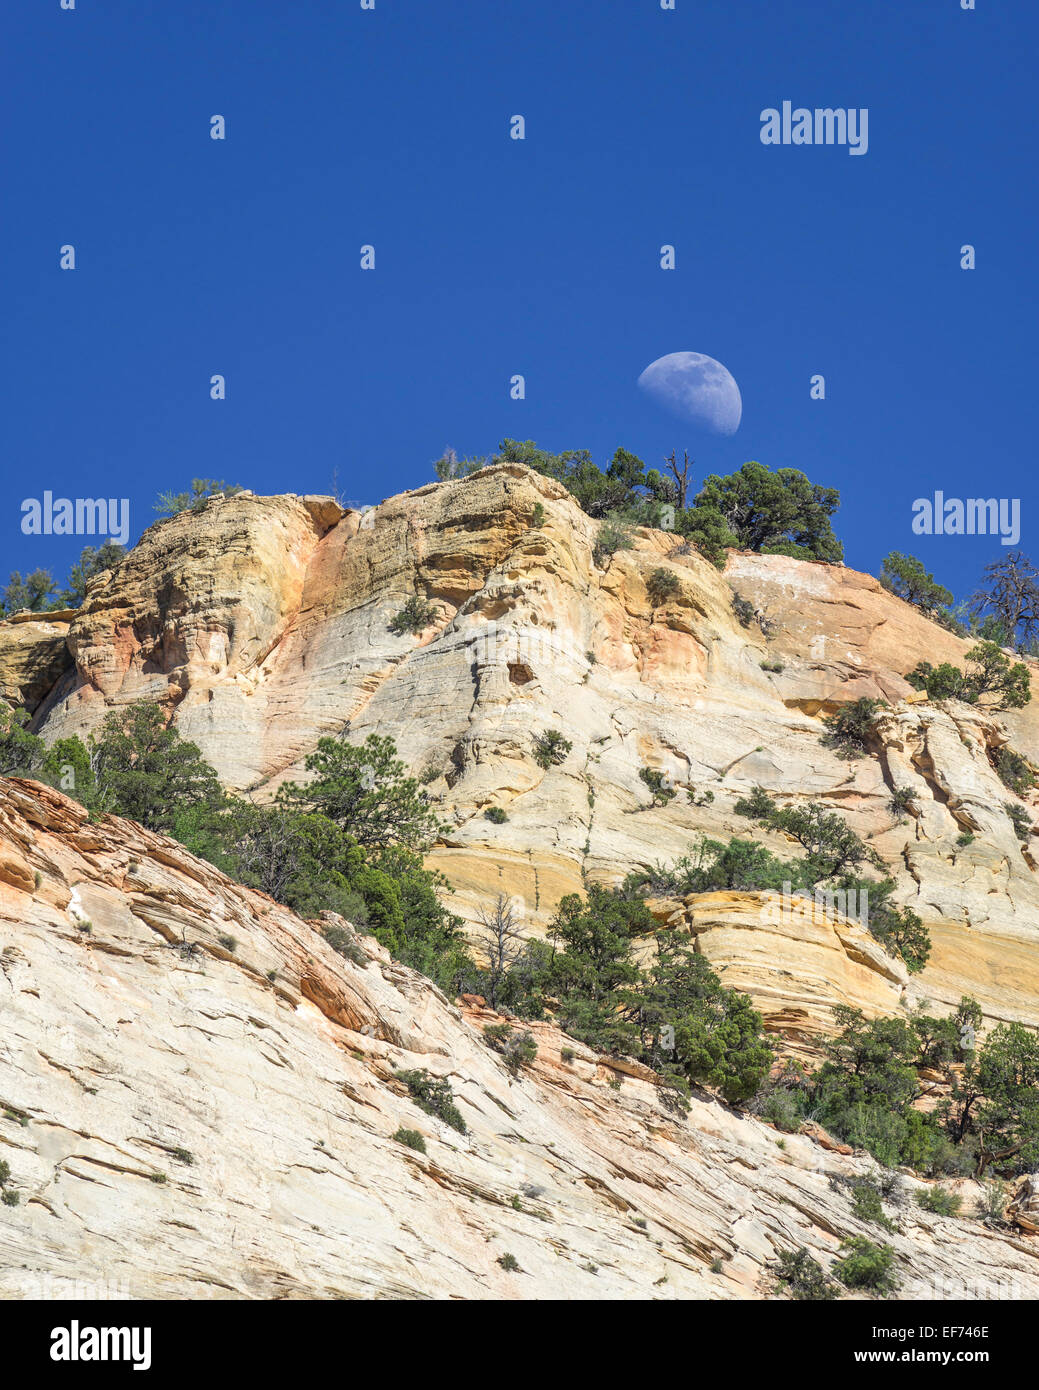 Moon rising at Checkerboard Mesa, Navajo sandstone, Zion National Park, Springdale, Utah, United States - Stock Image